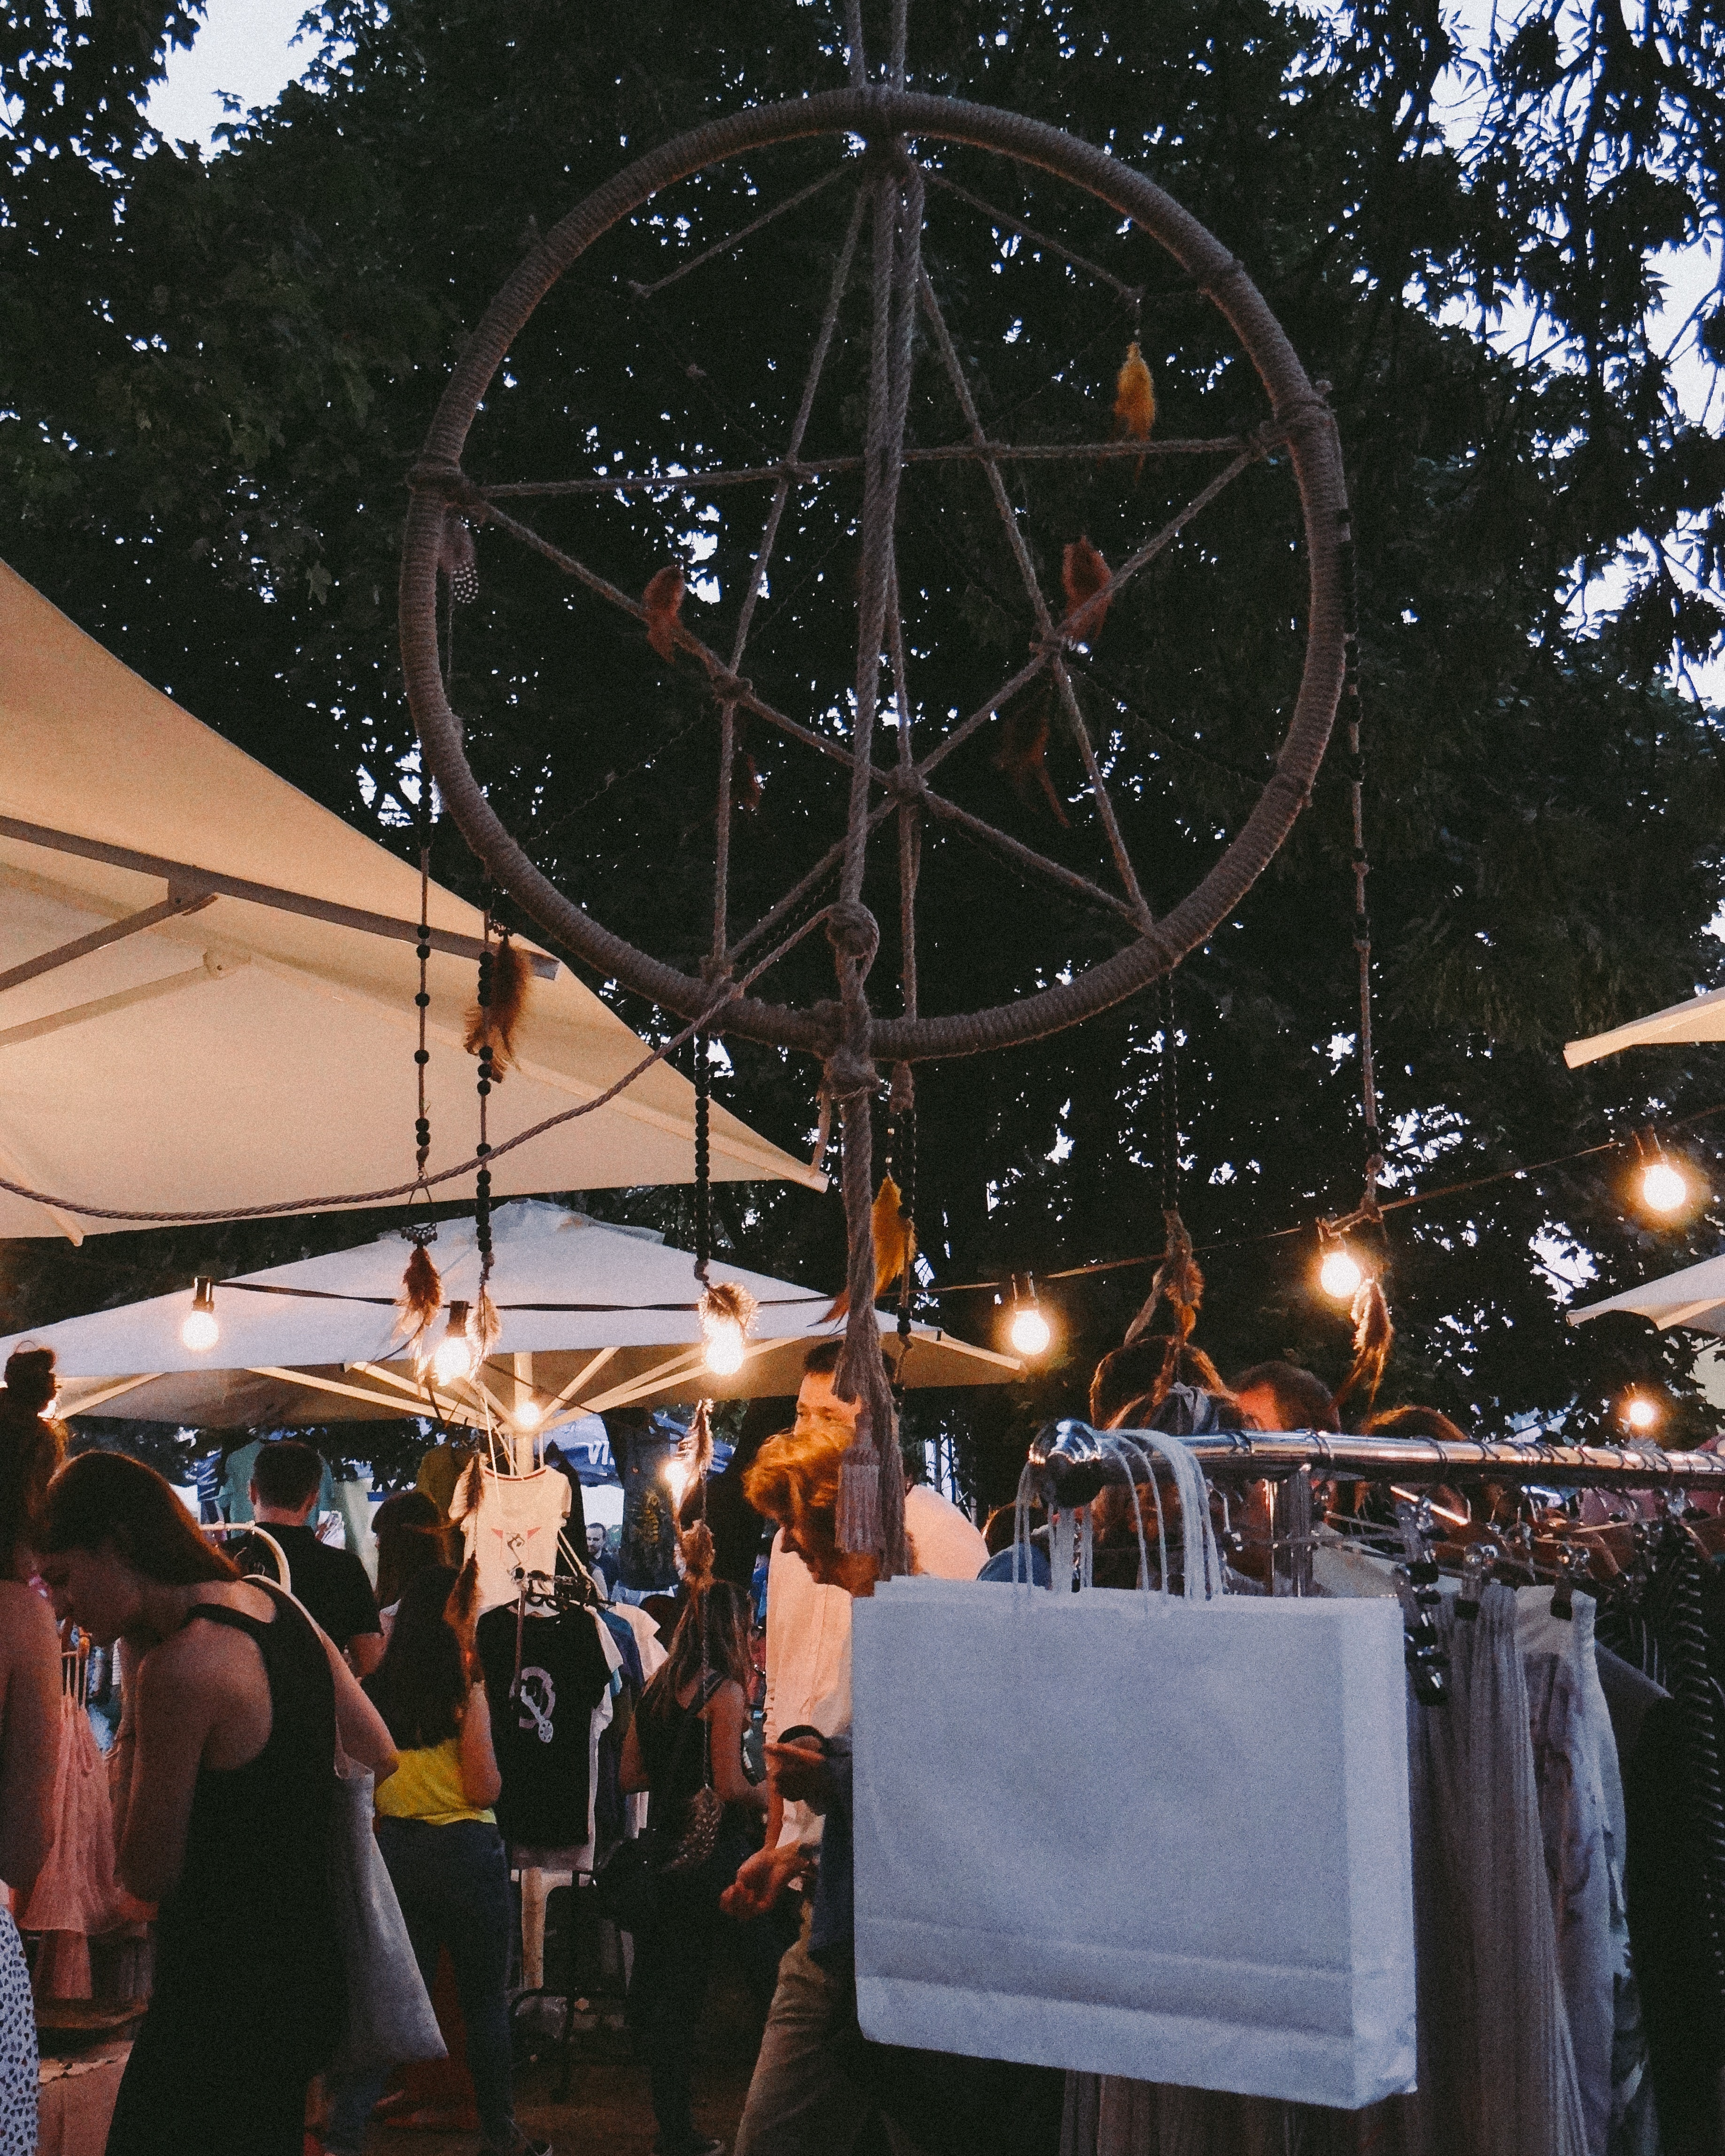 Photo of Dream Catcher in the Market, Adult, Market, Stall, Shopping, HQ Photo